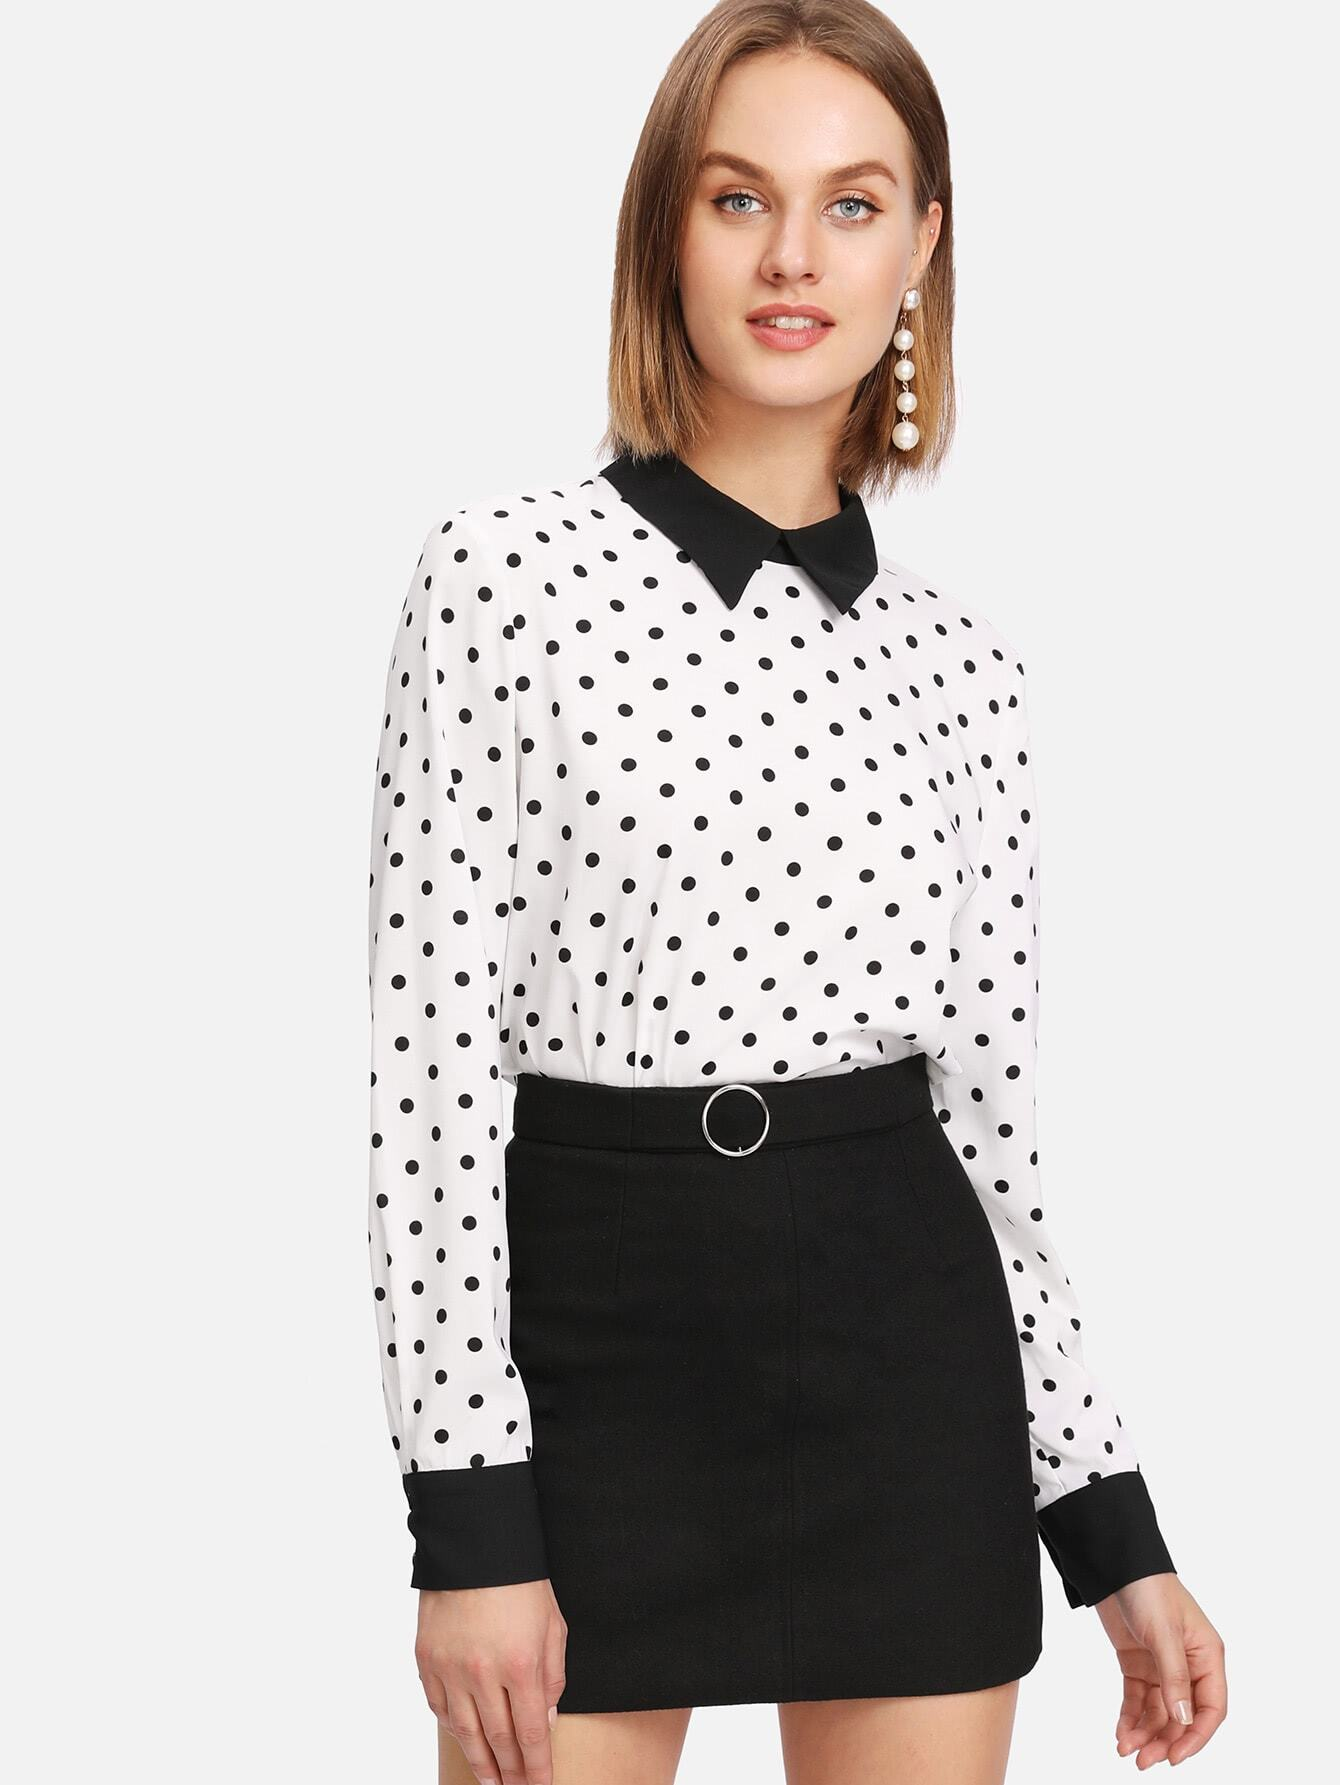 Contrast Collar Curved Hem Polka Dot Blouse polka dot slit hem contrast dress